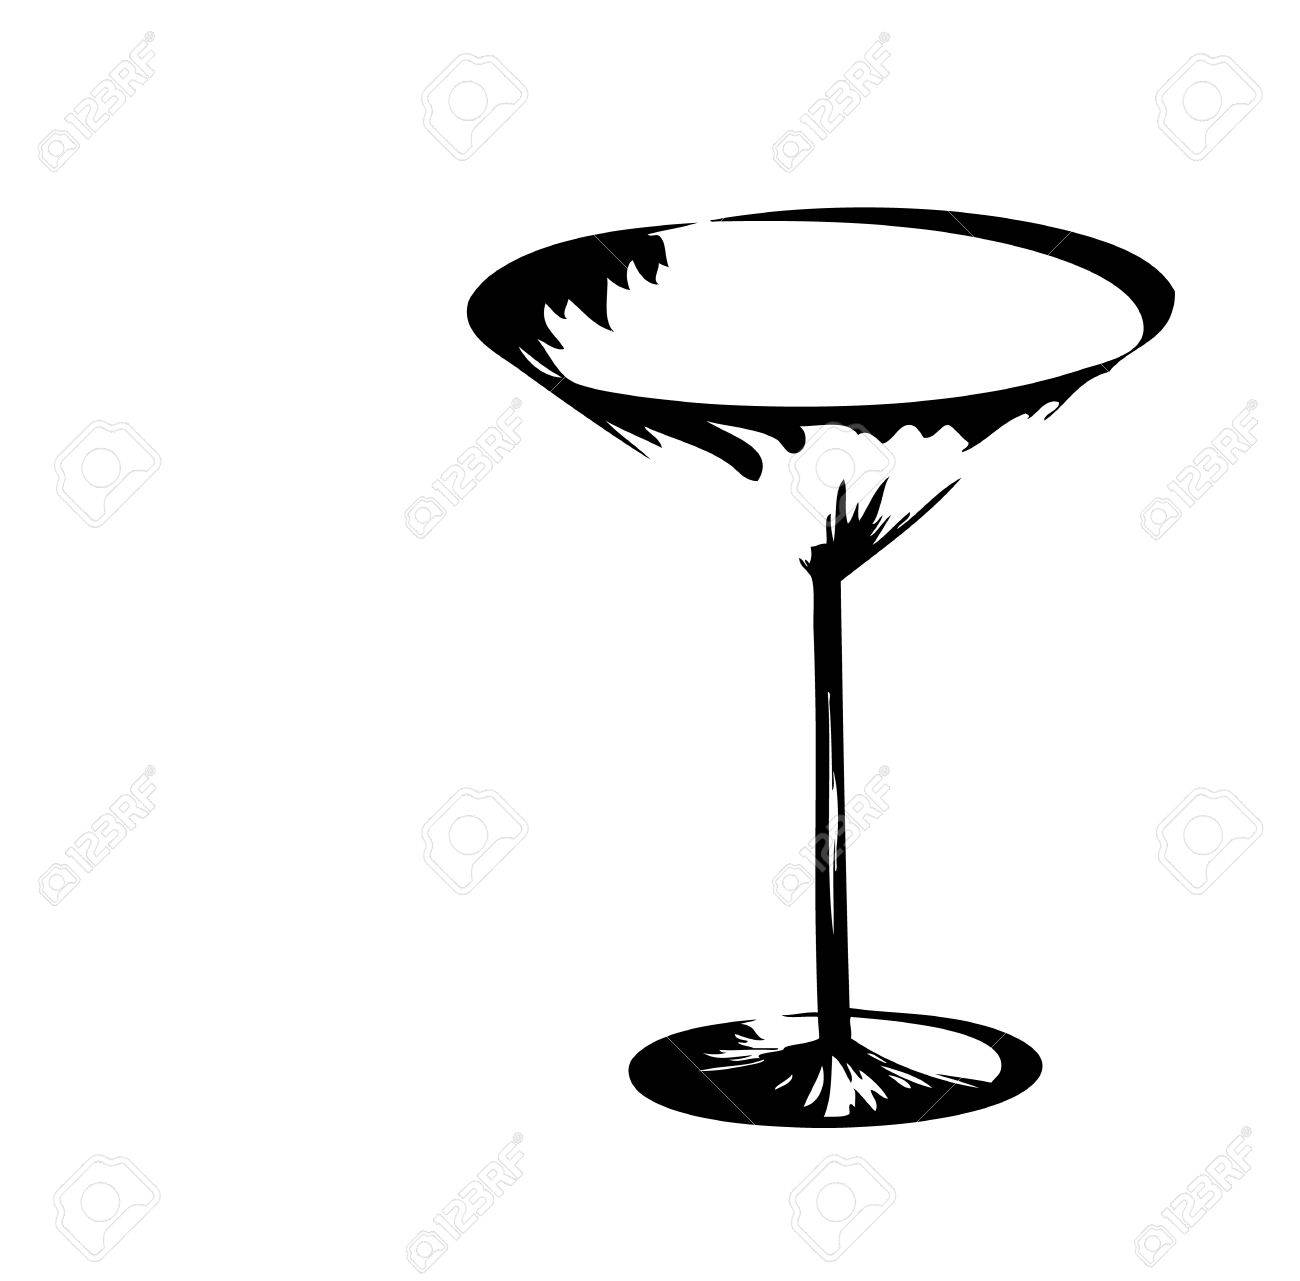 The stylized wine glass for fault Stock Vector - 5702957